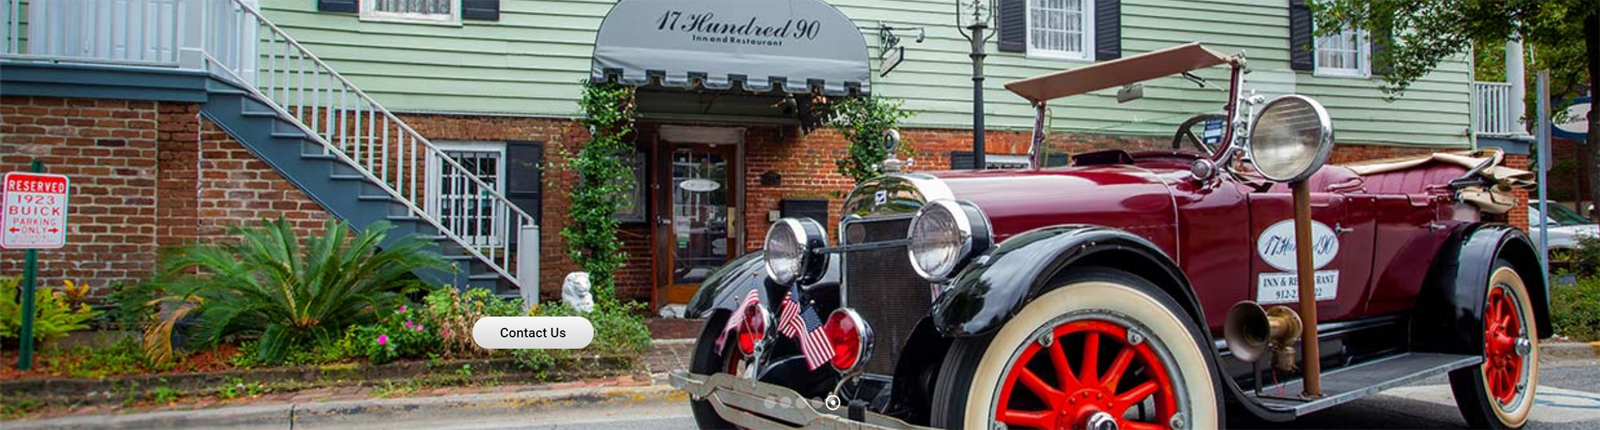 A burgundy 1923 Buick parked in front of the 17 Hundred 90 Inn and Restaurant.